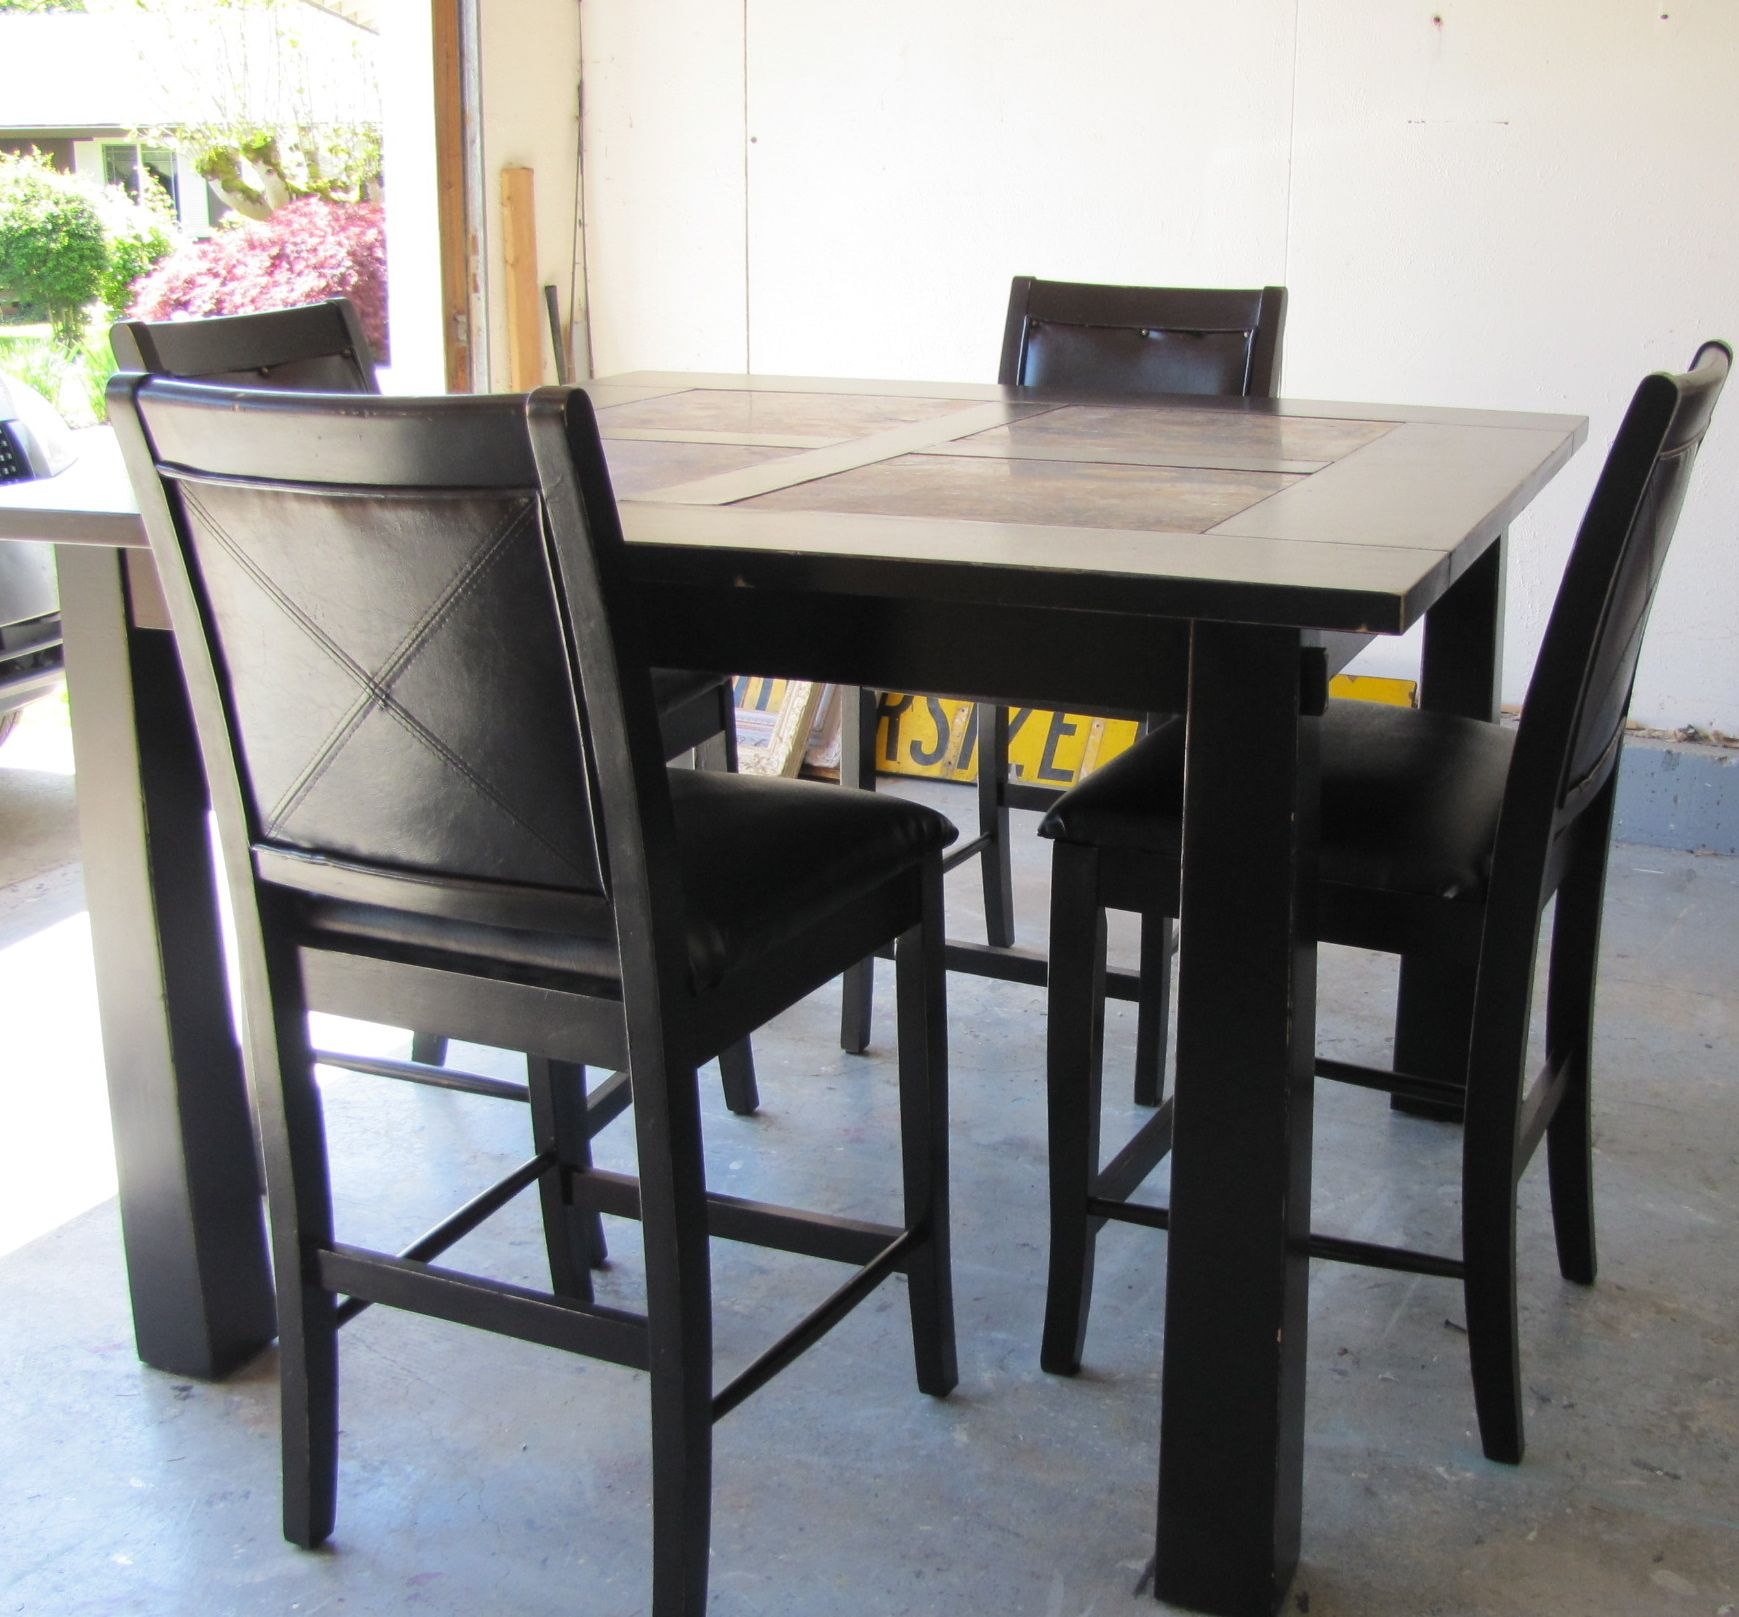 Black Distressed Pub Style Dining Table | Furniture | Pub Dining Set Pertaining To Best And Newest Anette 3 Piece Counter Height Dining Sets (View 15 of 20)